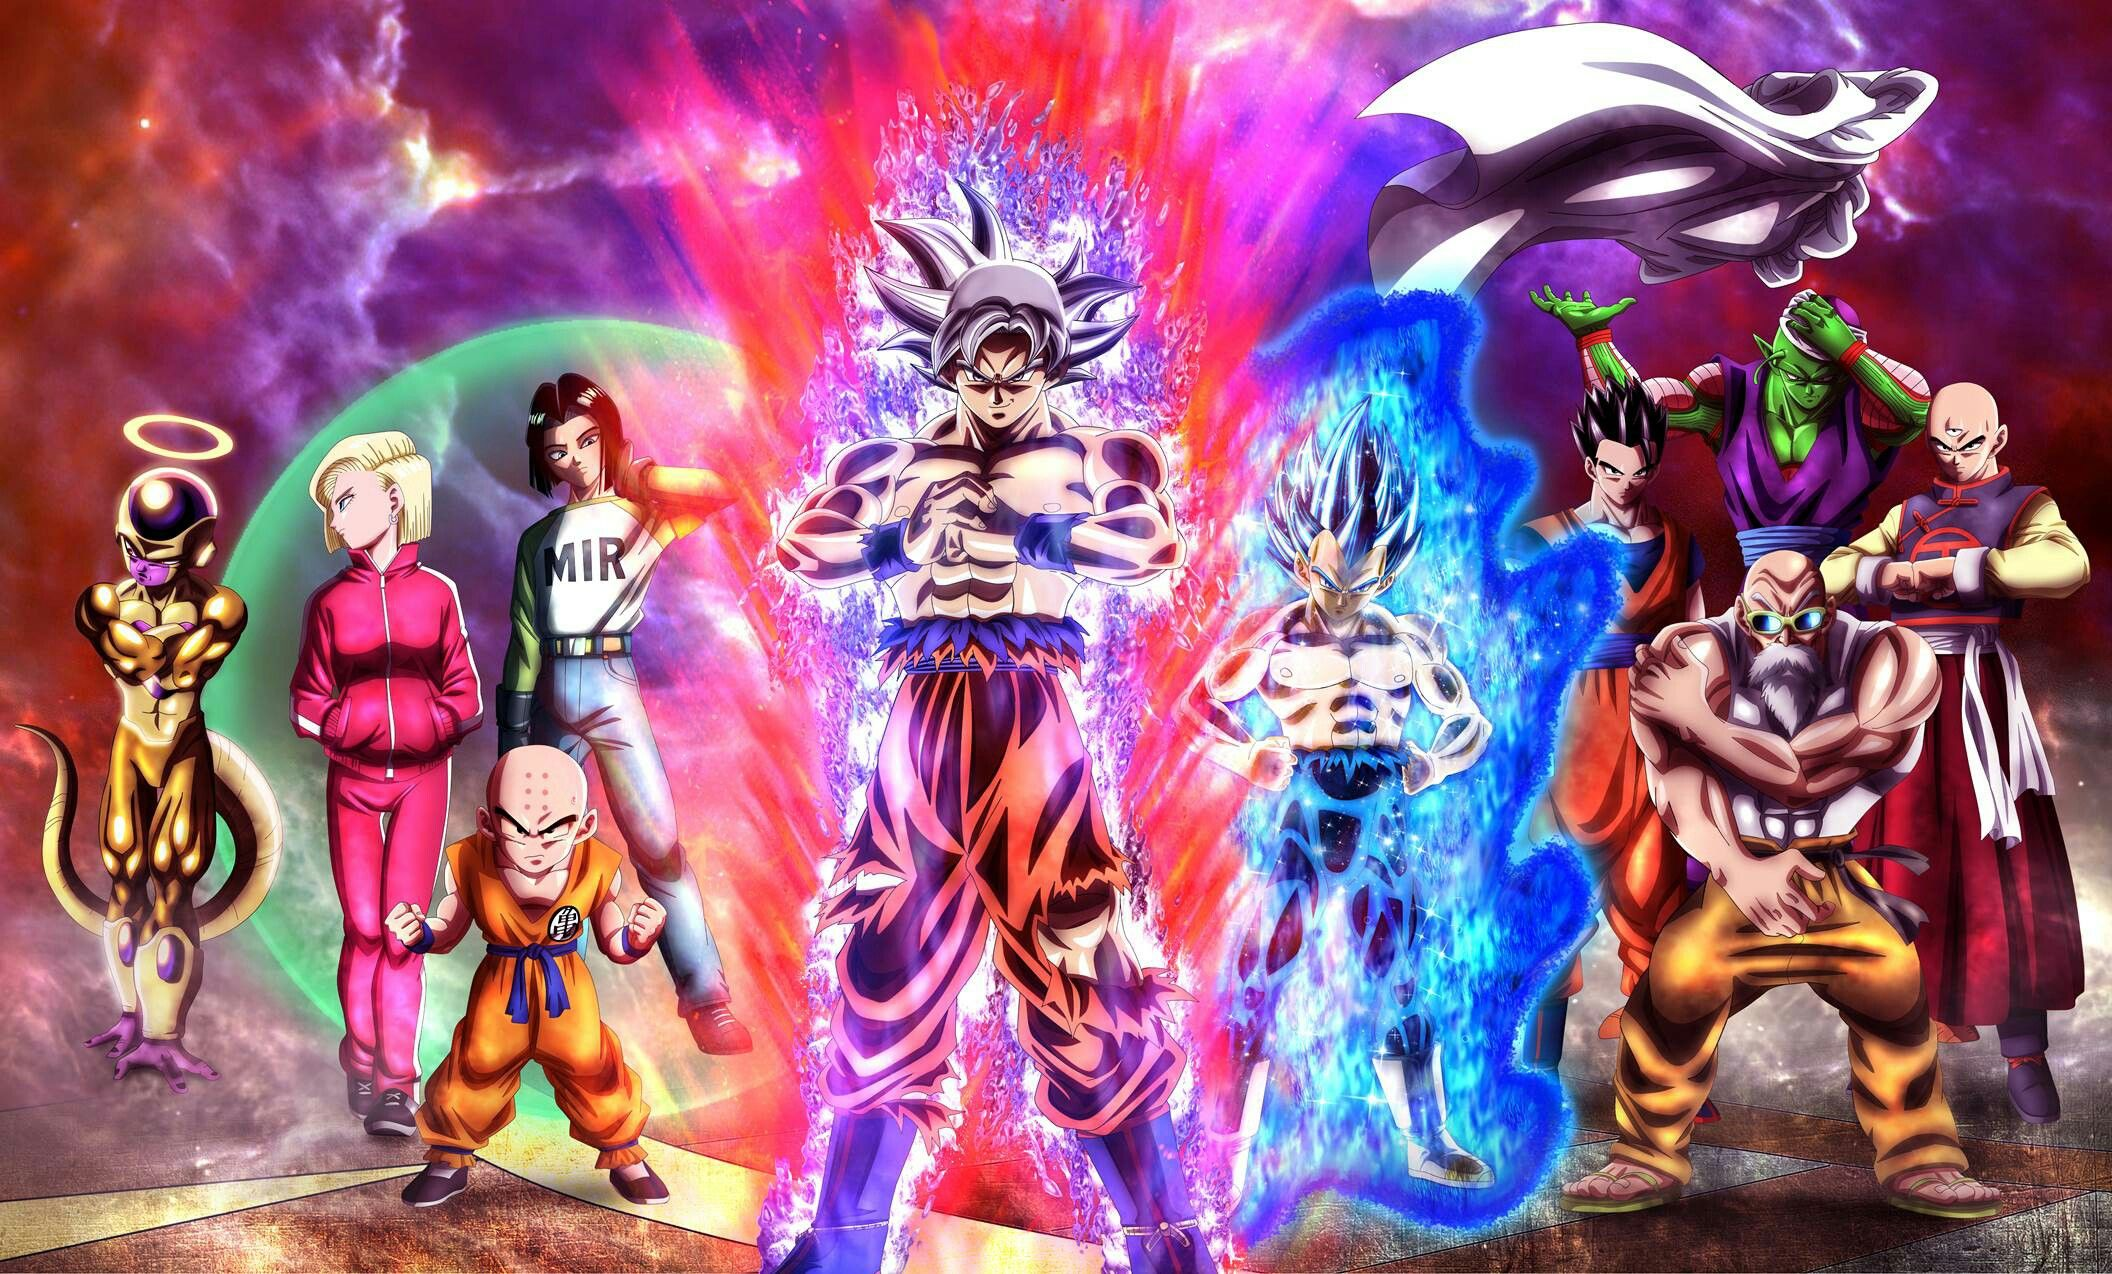 Team Universe 7 Full Power Manga Recreated Dragon Ball Dragon Ball Image Anime Dragon Ball